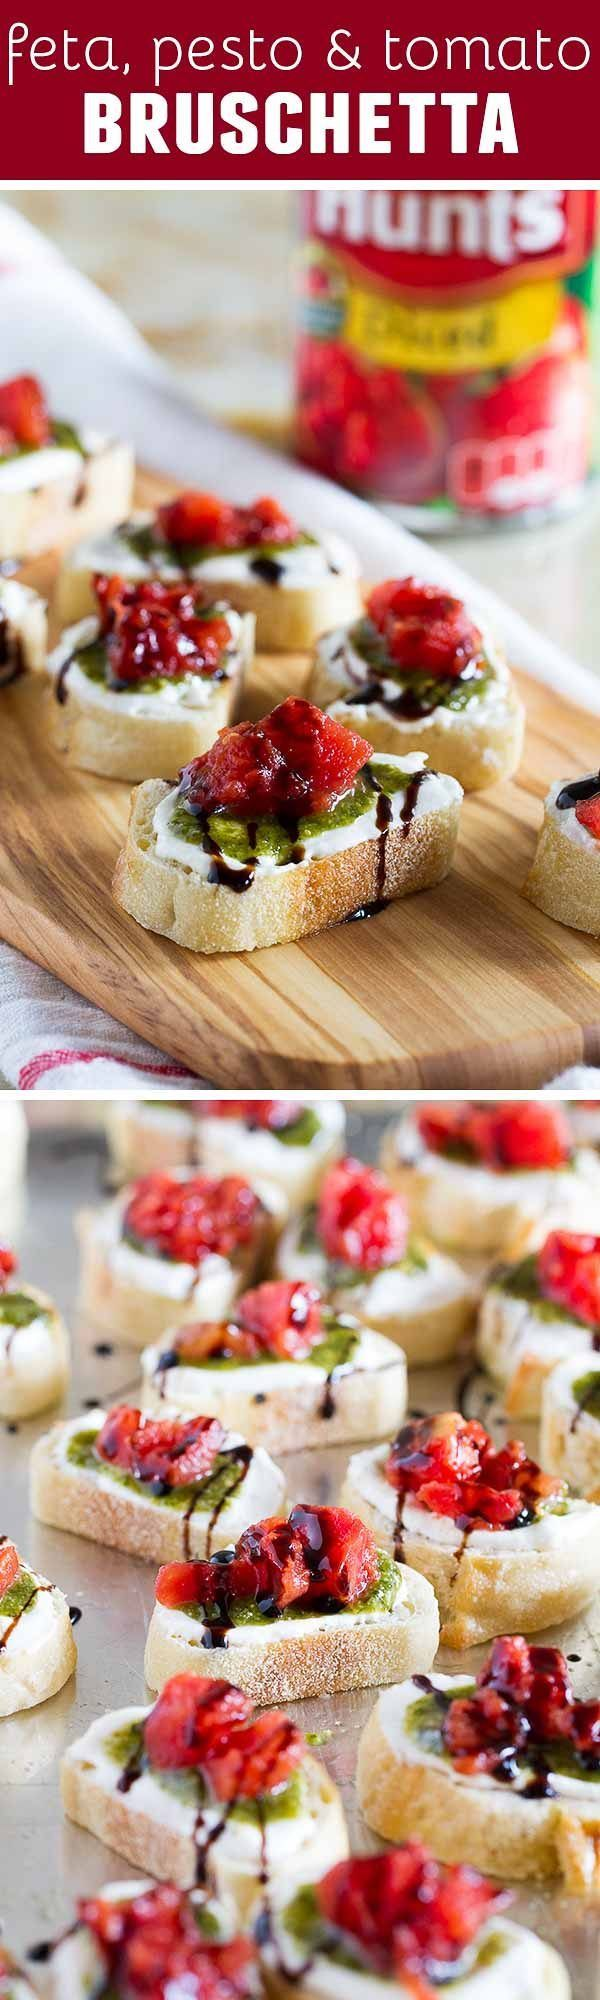 A true crowd pleasing appetizer, this Feta, Pesto and Tomato Bruschetta is a tasty appetizer that can be served year round. Perfect as a starter or as a holiday party appetizer.